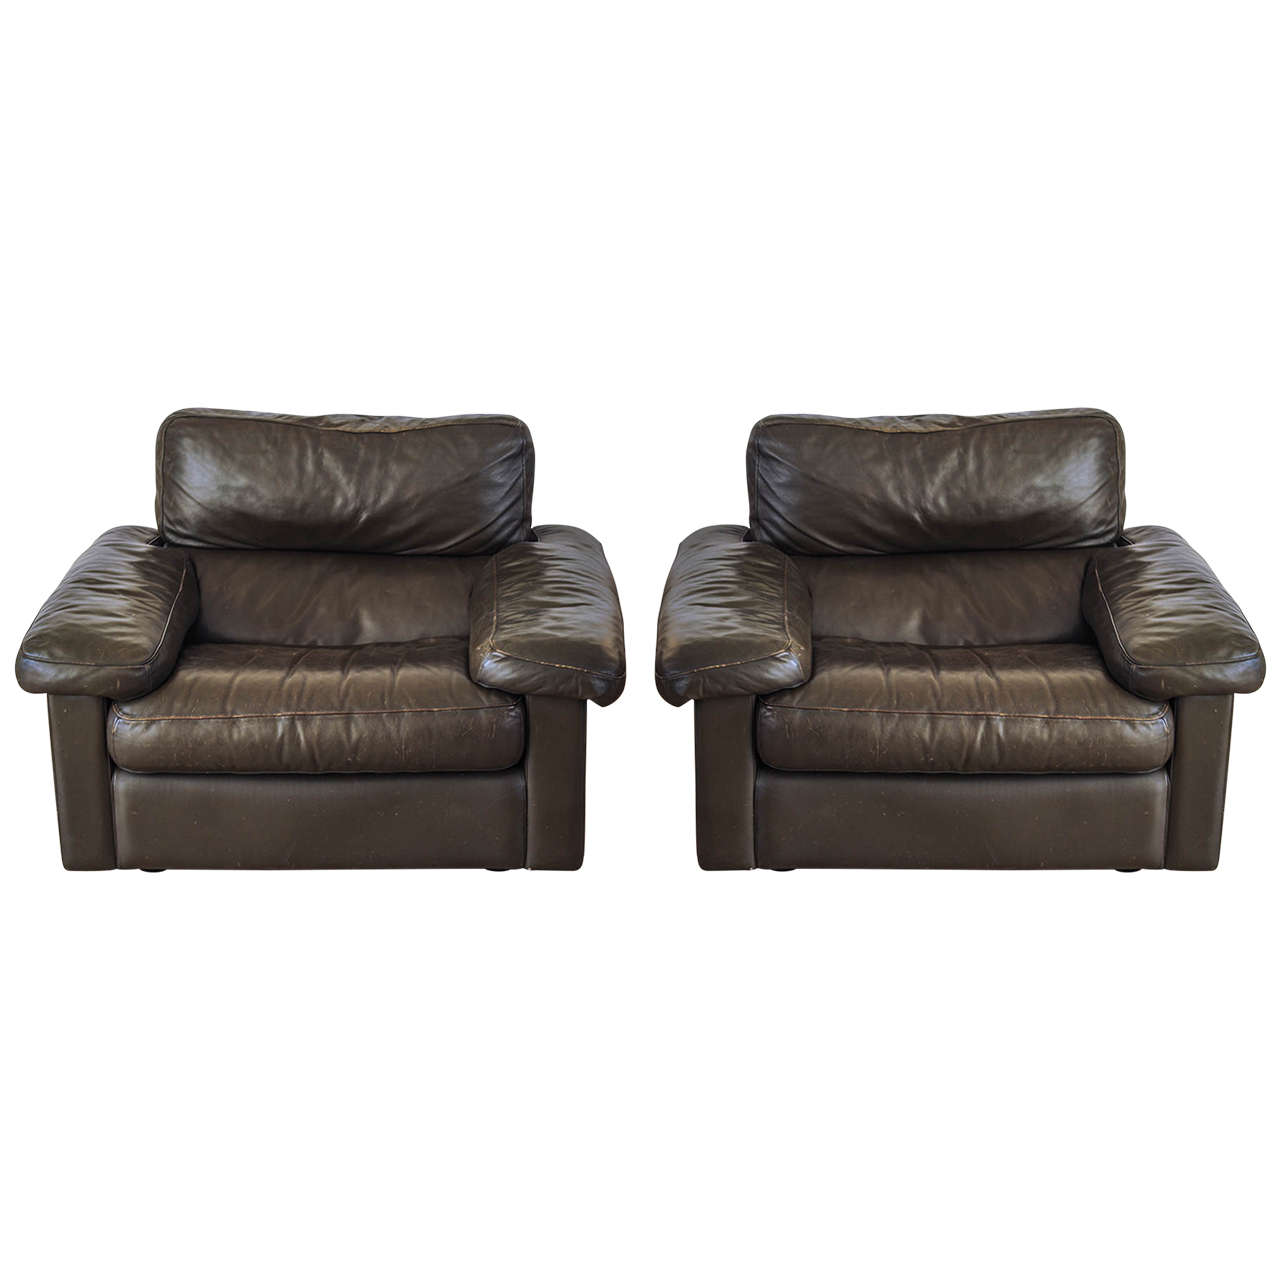 Leather sofa by poltrona frau at 1stdibs - Set Of Two Easy Chairs Petronio By Tito Agnoli For Poltrona Frau 1